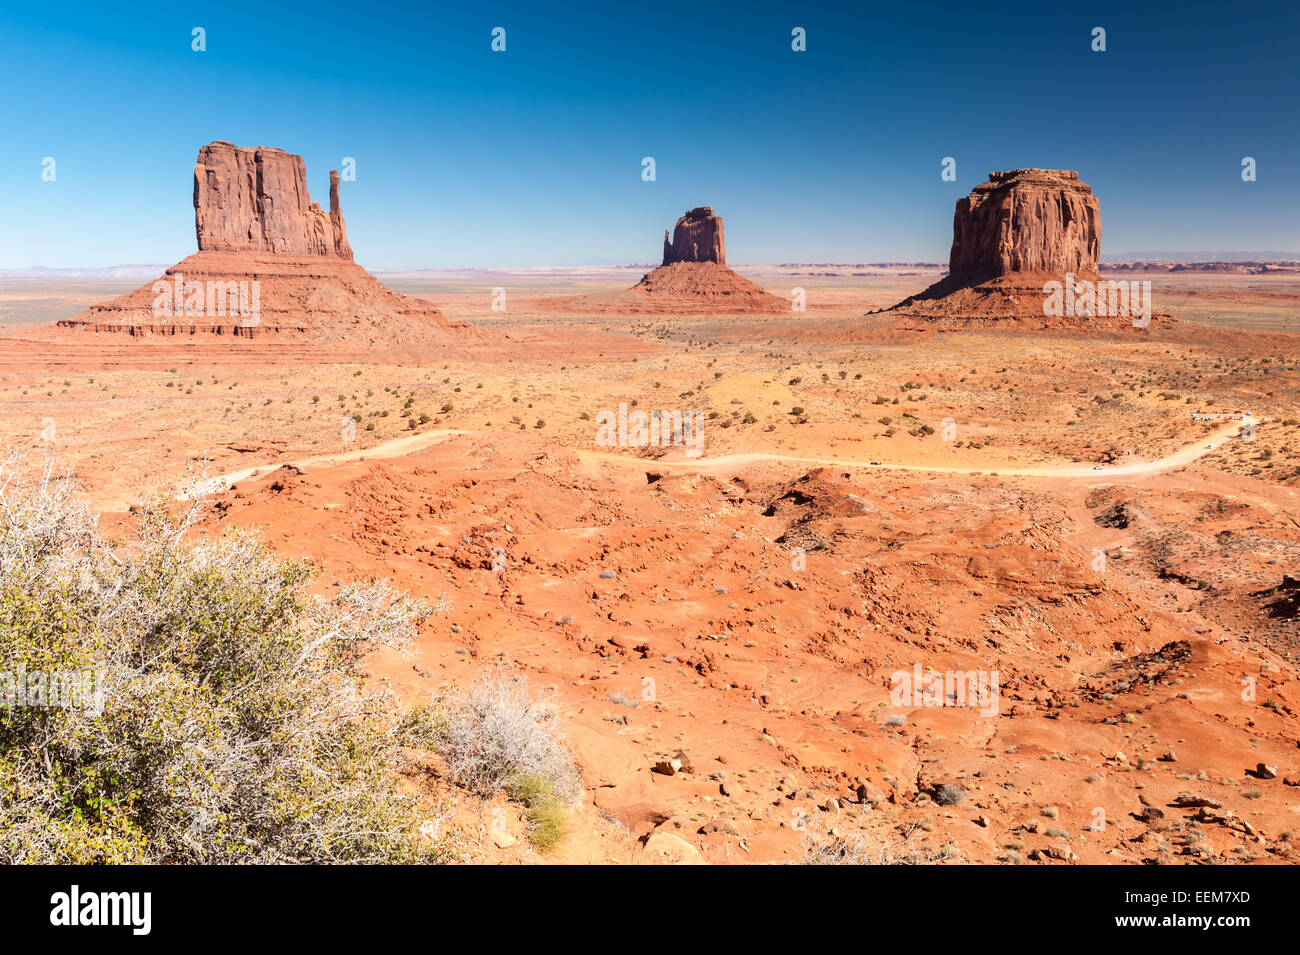 USA, Utah, Navajo Nation, Monument Valley, Monument Valley Navajo Tribal Park, The Mittens - Stock Image